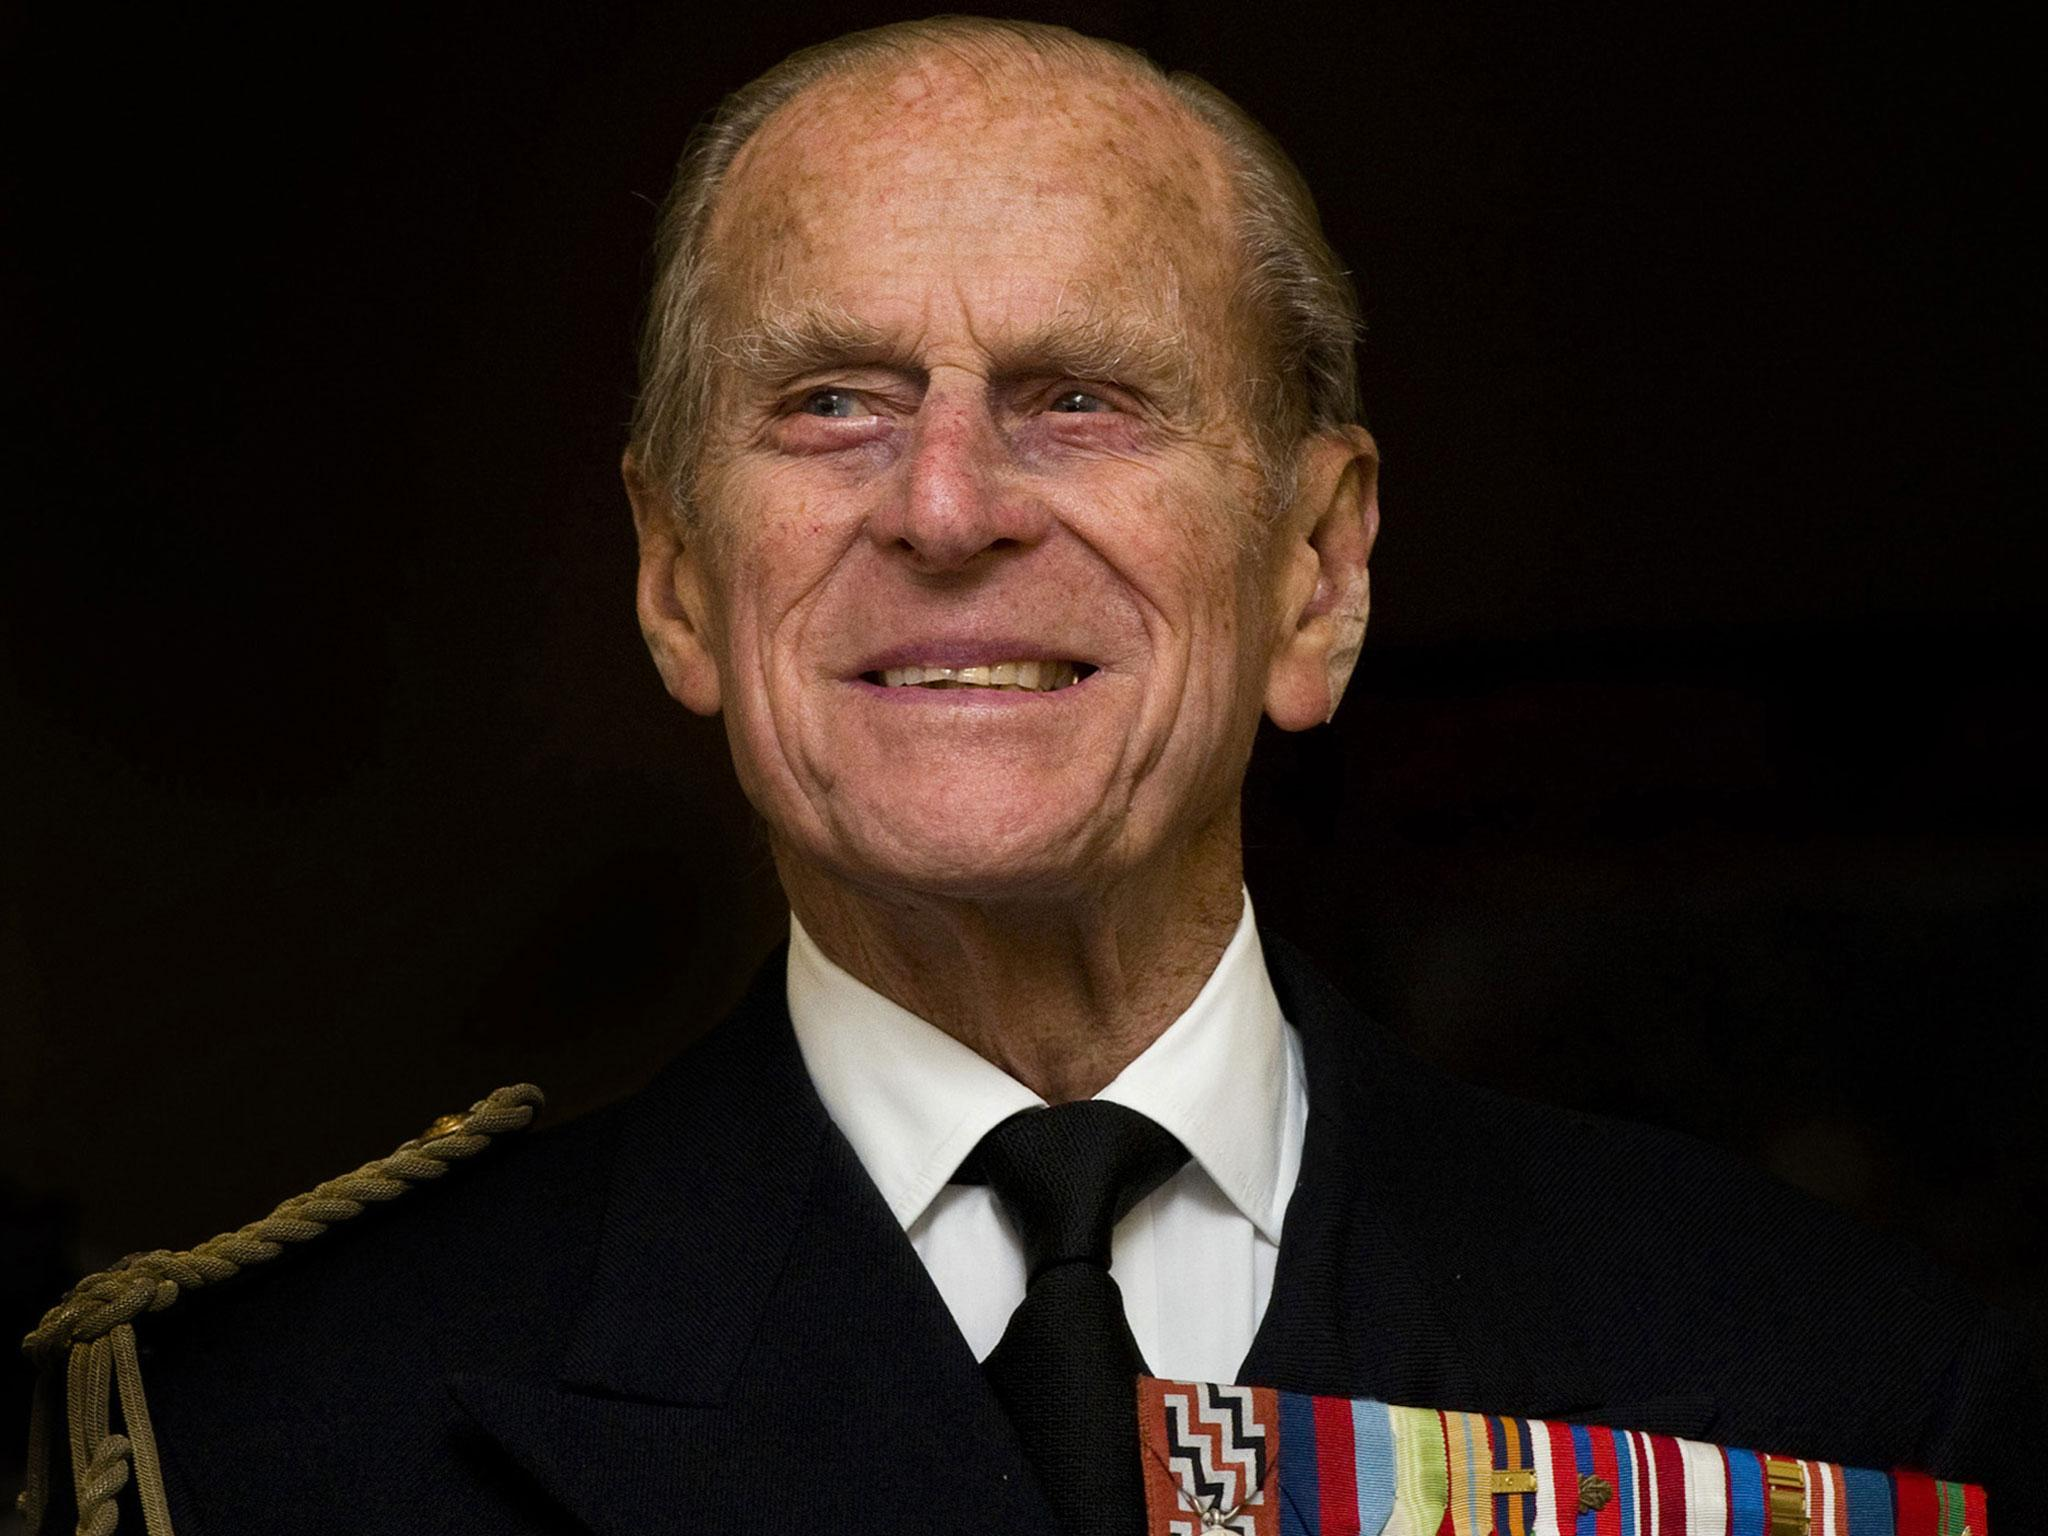 Prince Philip Quotes Prince Philip To Stand Down From Public Life 95 Gaffes In 95